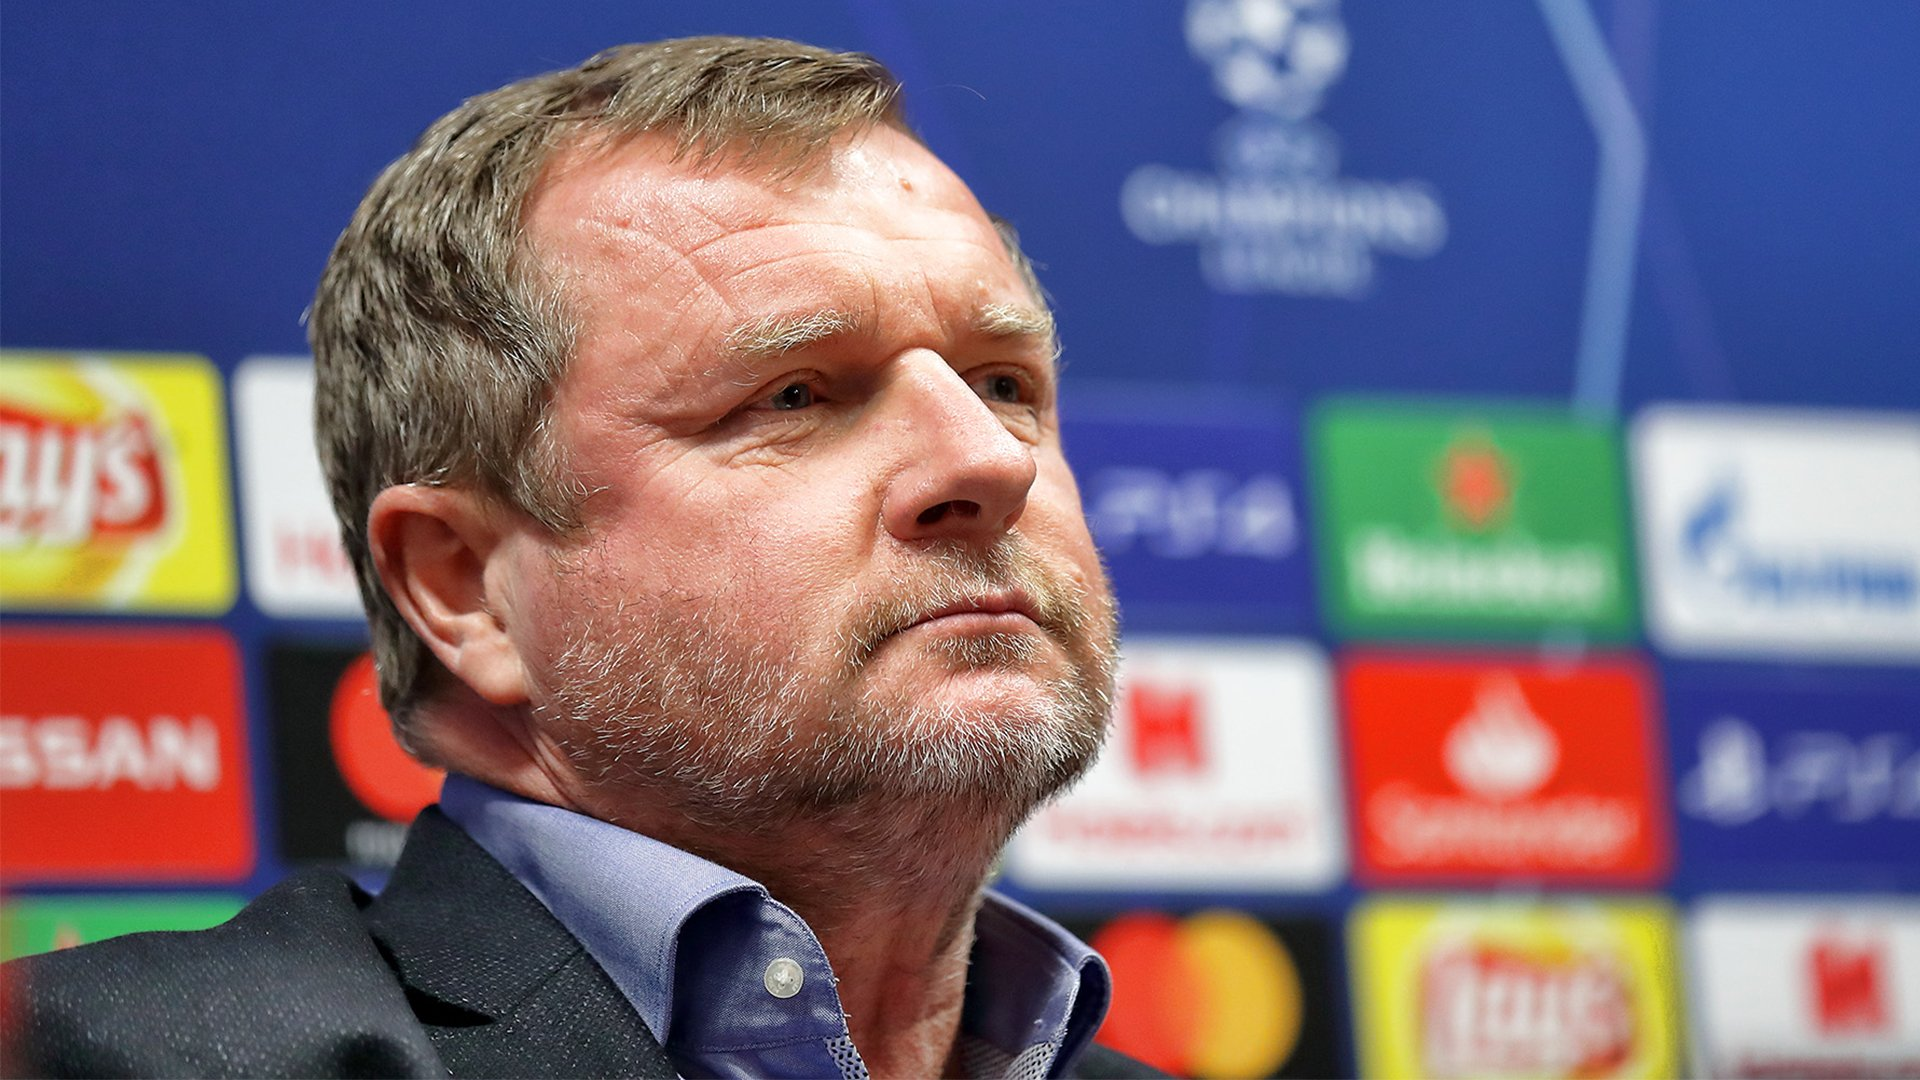 Head coach Pavel Vrba: I am glad that teams like Real Madrid play here